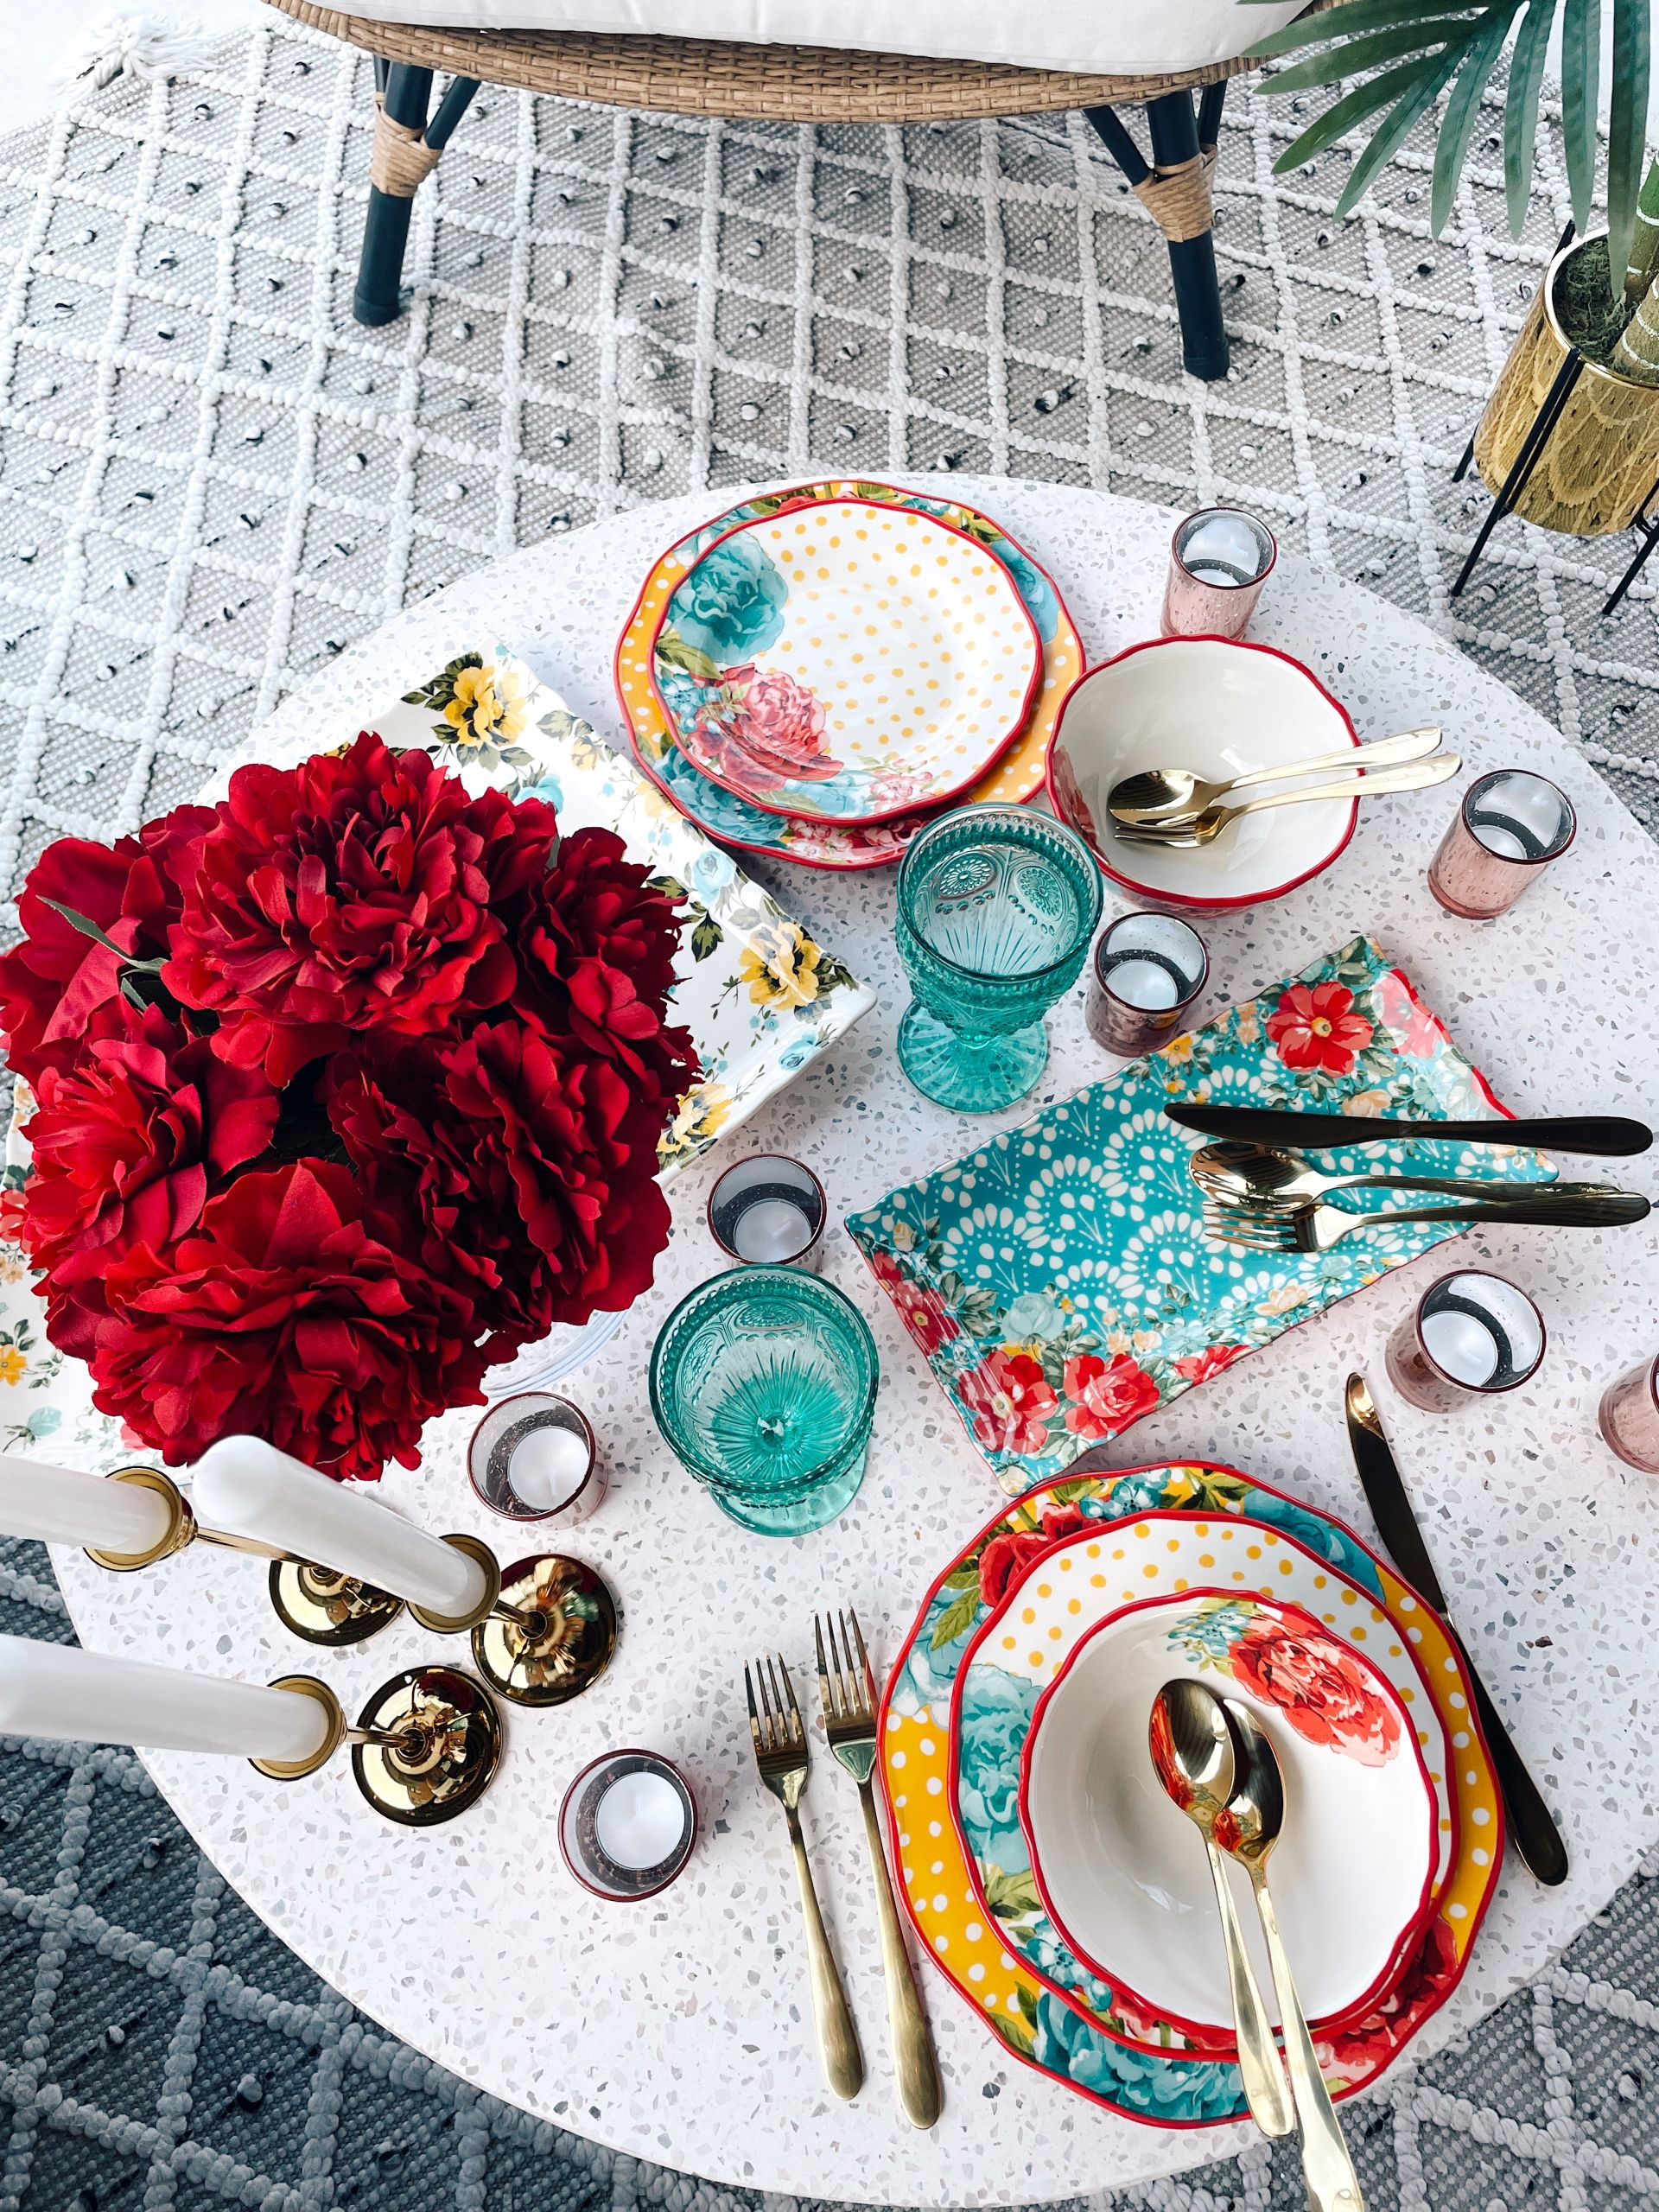 Summer Patio Home Entertaining Finds from Walmart, outdoor party table setting, vibrant tablescape, Summer table decor, Summer dinner party ideas, patio table settings, outdoor table settings, red white and blue party decor, affordable vibrant table top ideas, summer tabletop ideas, egg chair styling, Walmart home decor patios, Walmart patio finds, Pioneer women dinnerware set